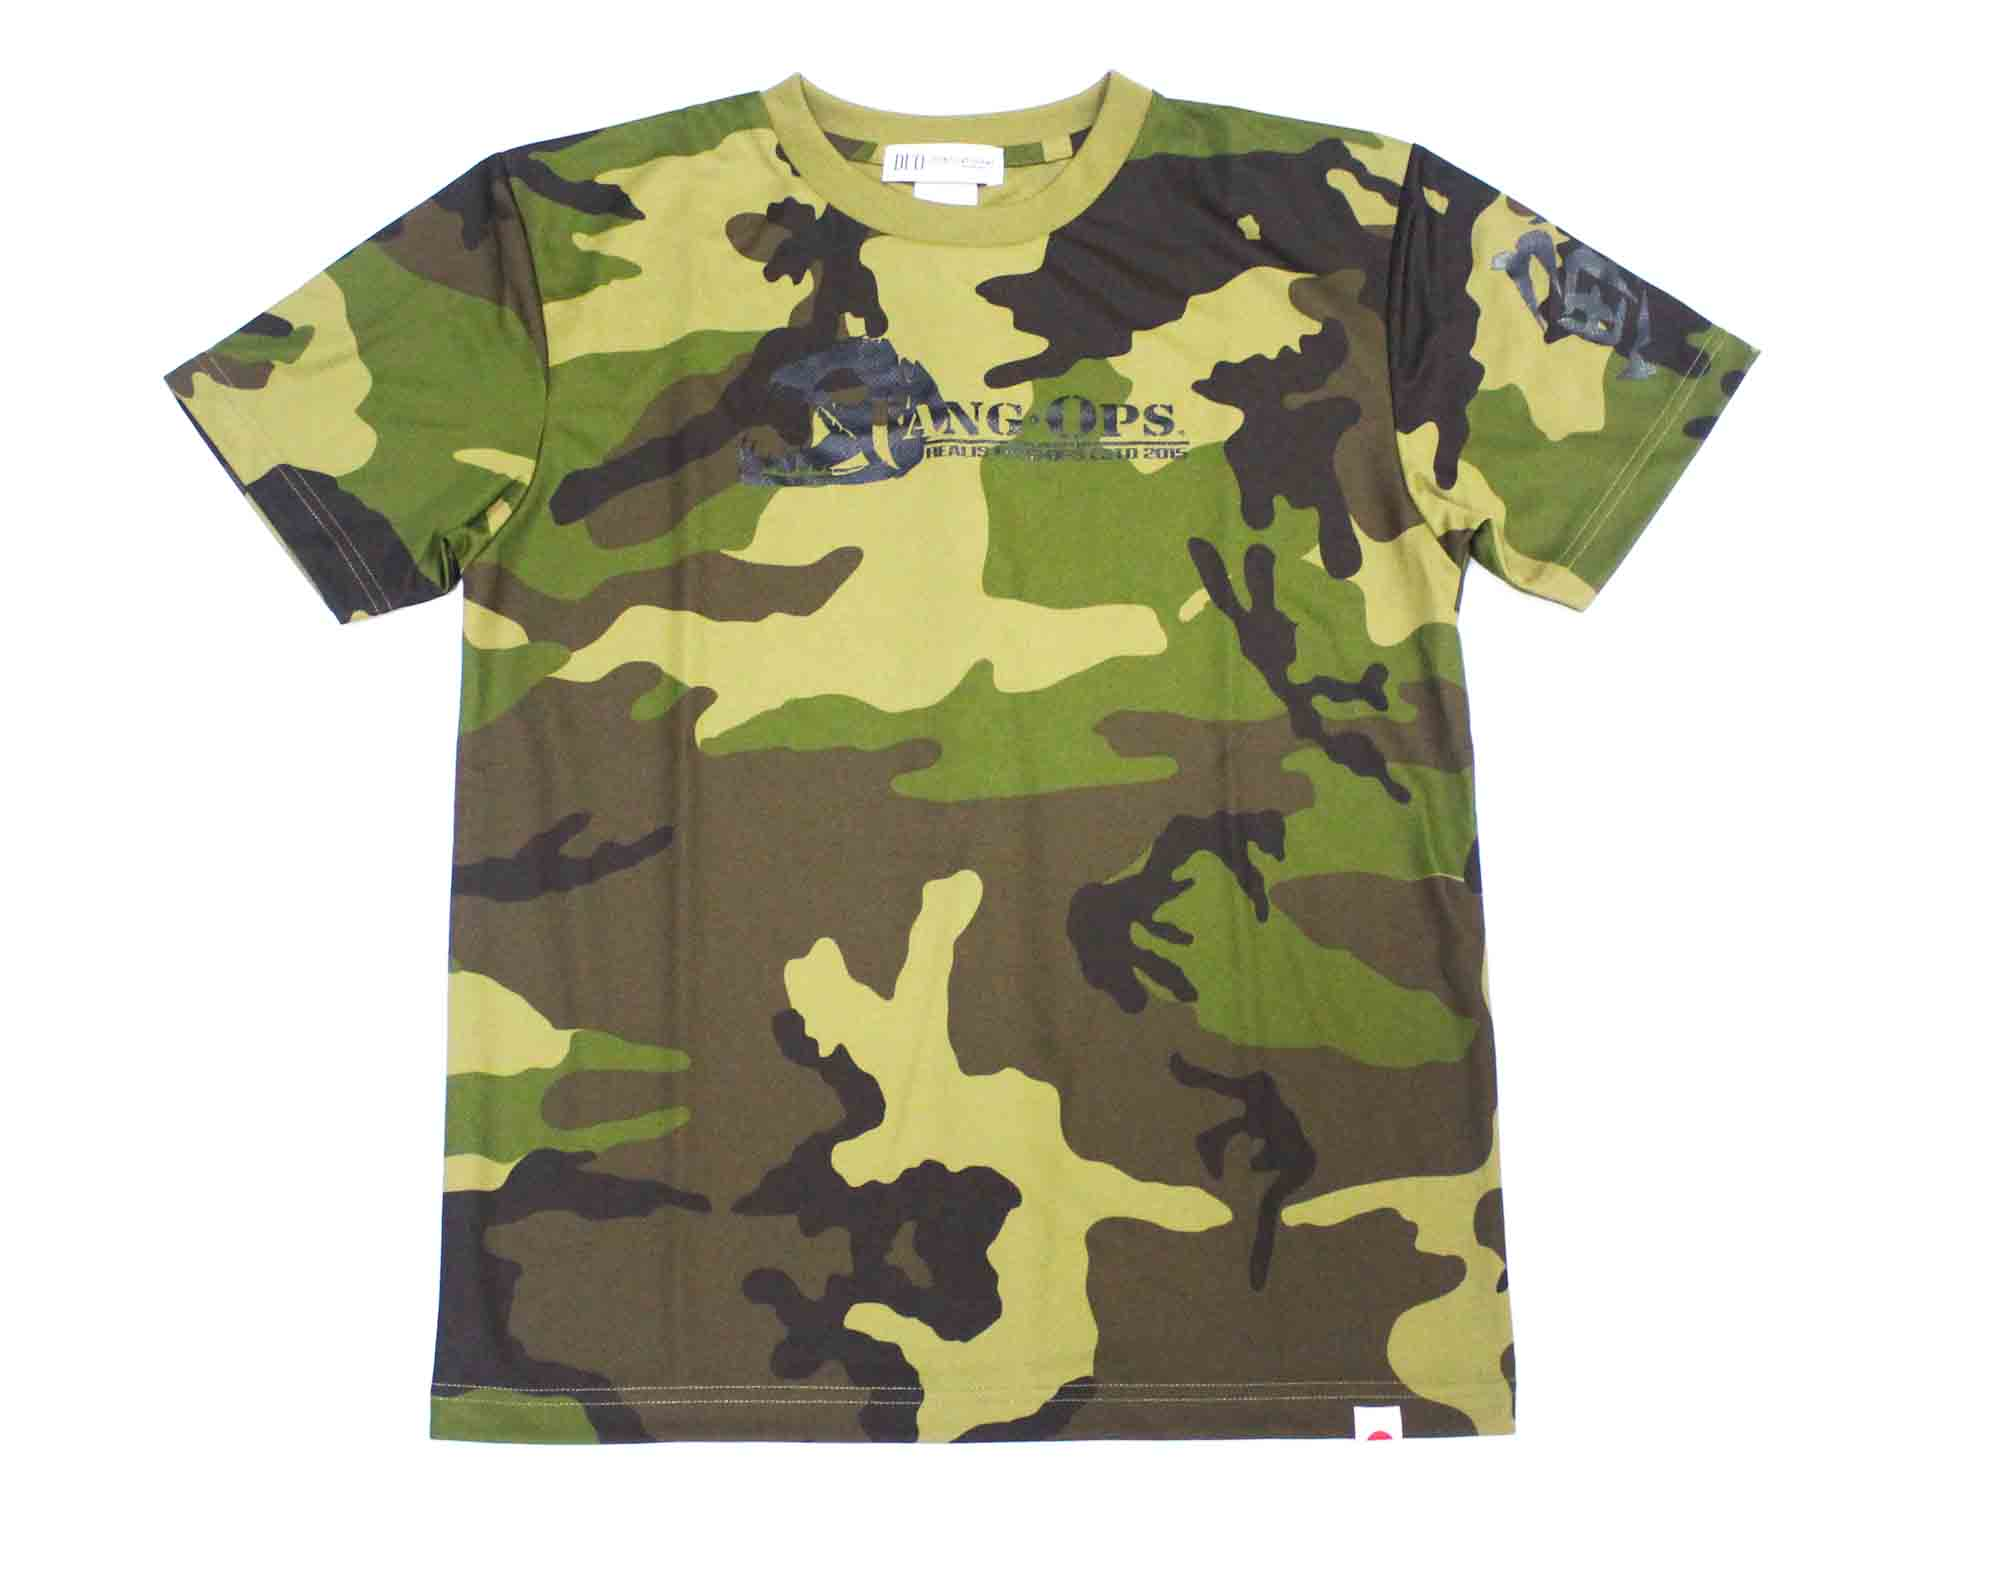 Duo T Shirt Fang Ops Beast Short Sleeve Dry Fit Camo Size S (1416)